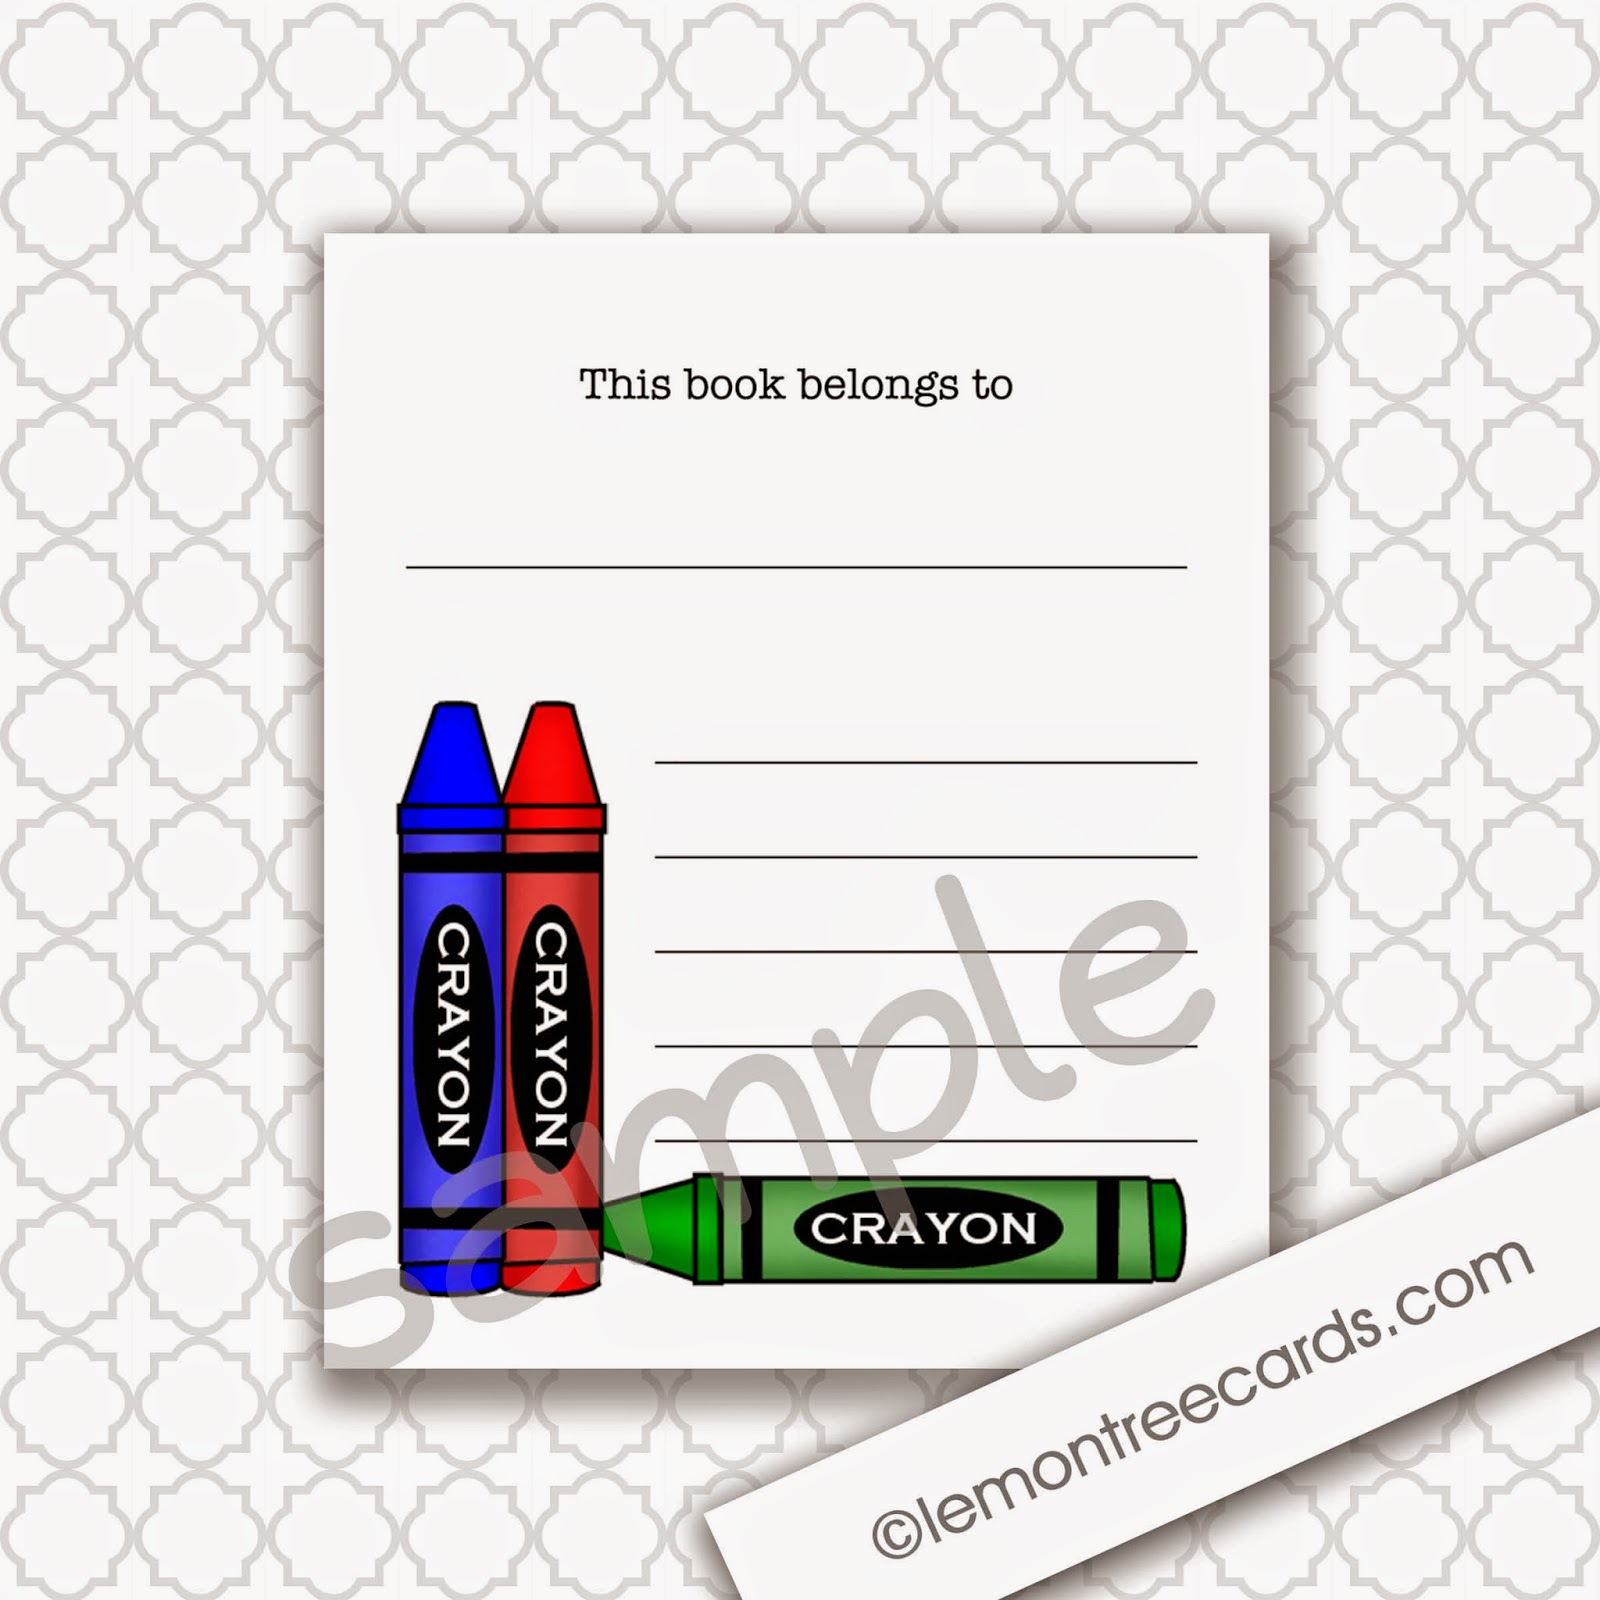 Crayon Bookplate Labels